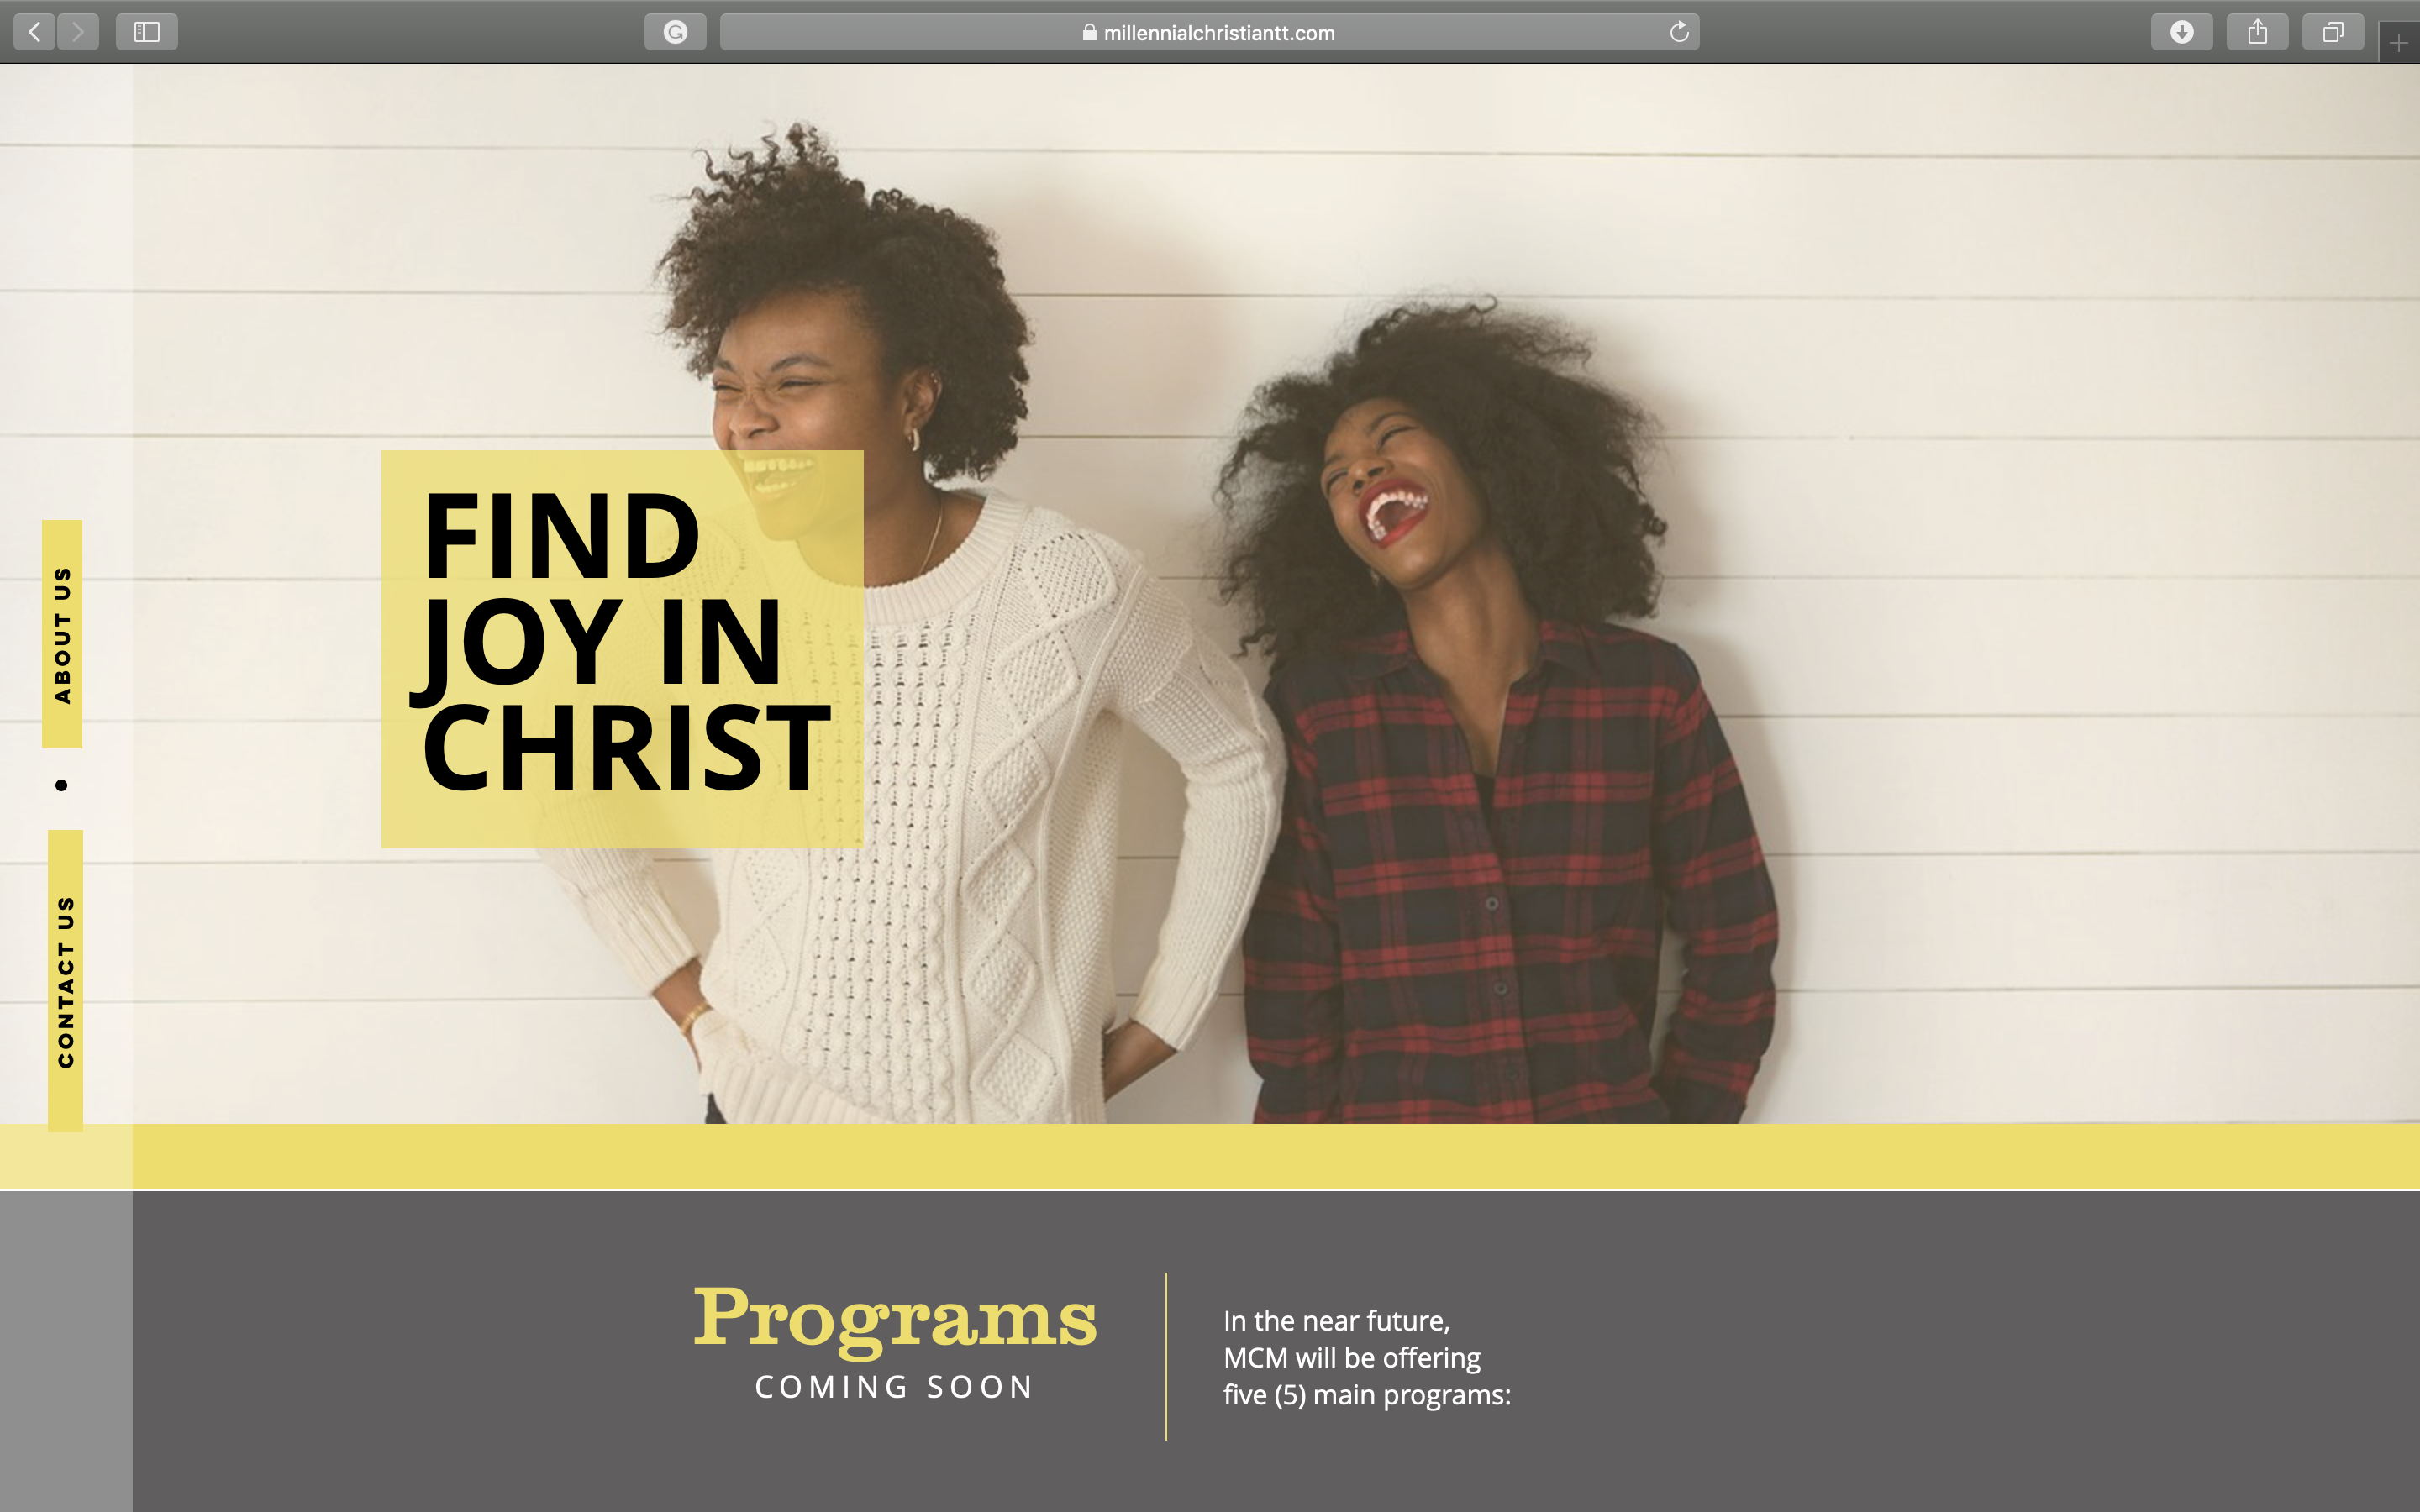 Website Design (Millennial Christian Min